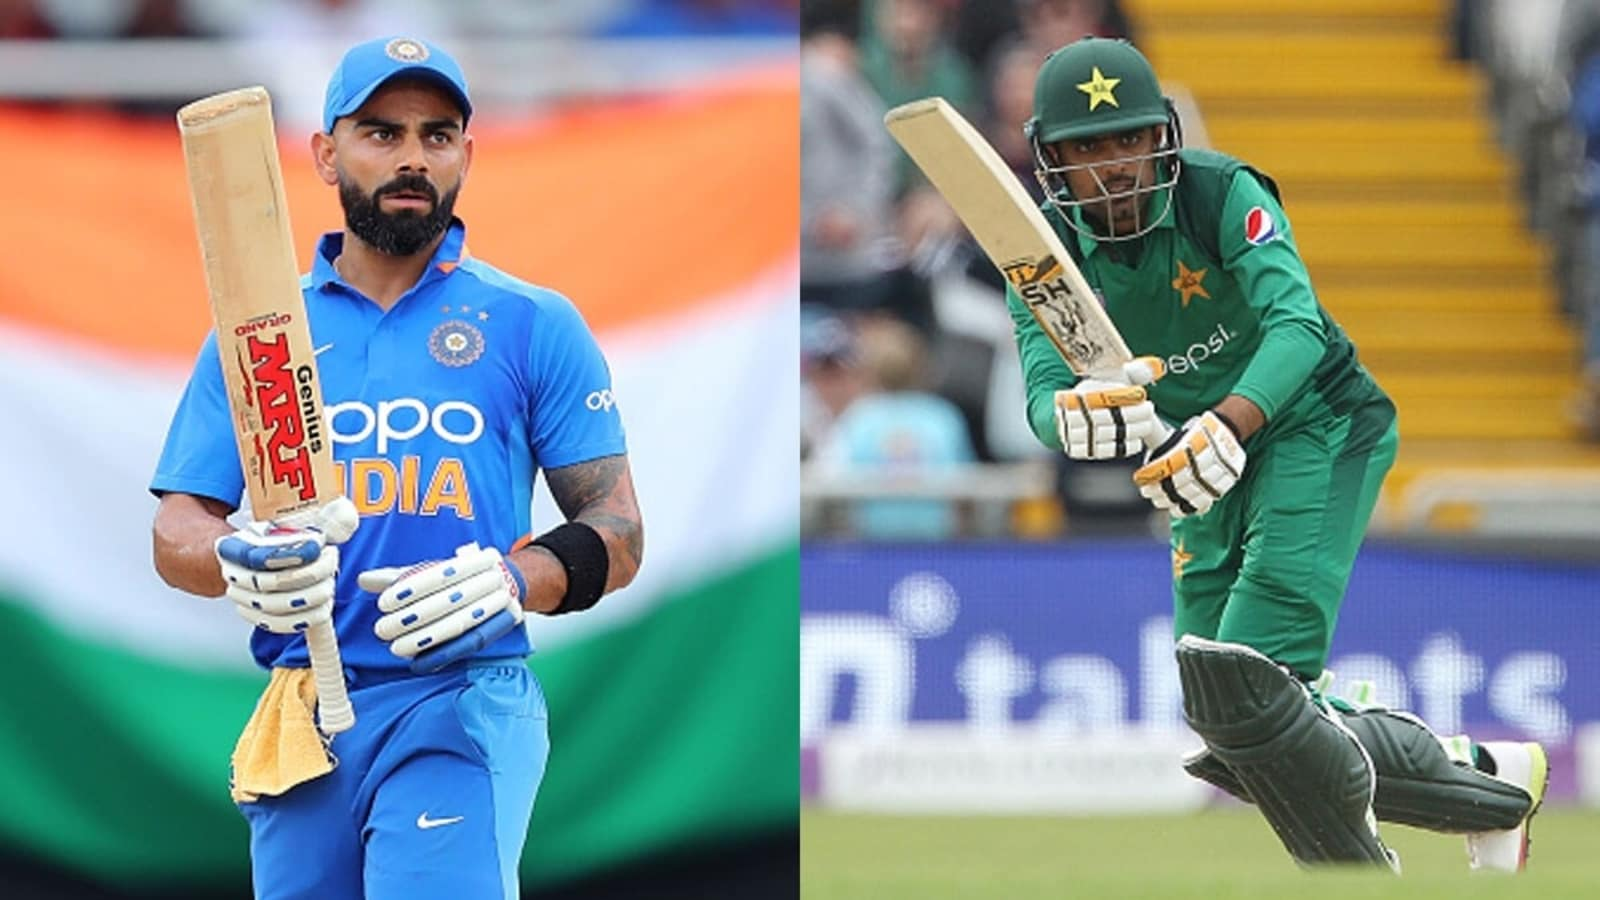 It's Kohli vs Babar, bring it on': Twitter erupts as India vs Pakistan is  set to take place at T20 World Cup 2021 | Cricket - Hindustan Times